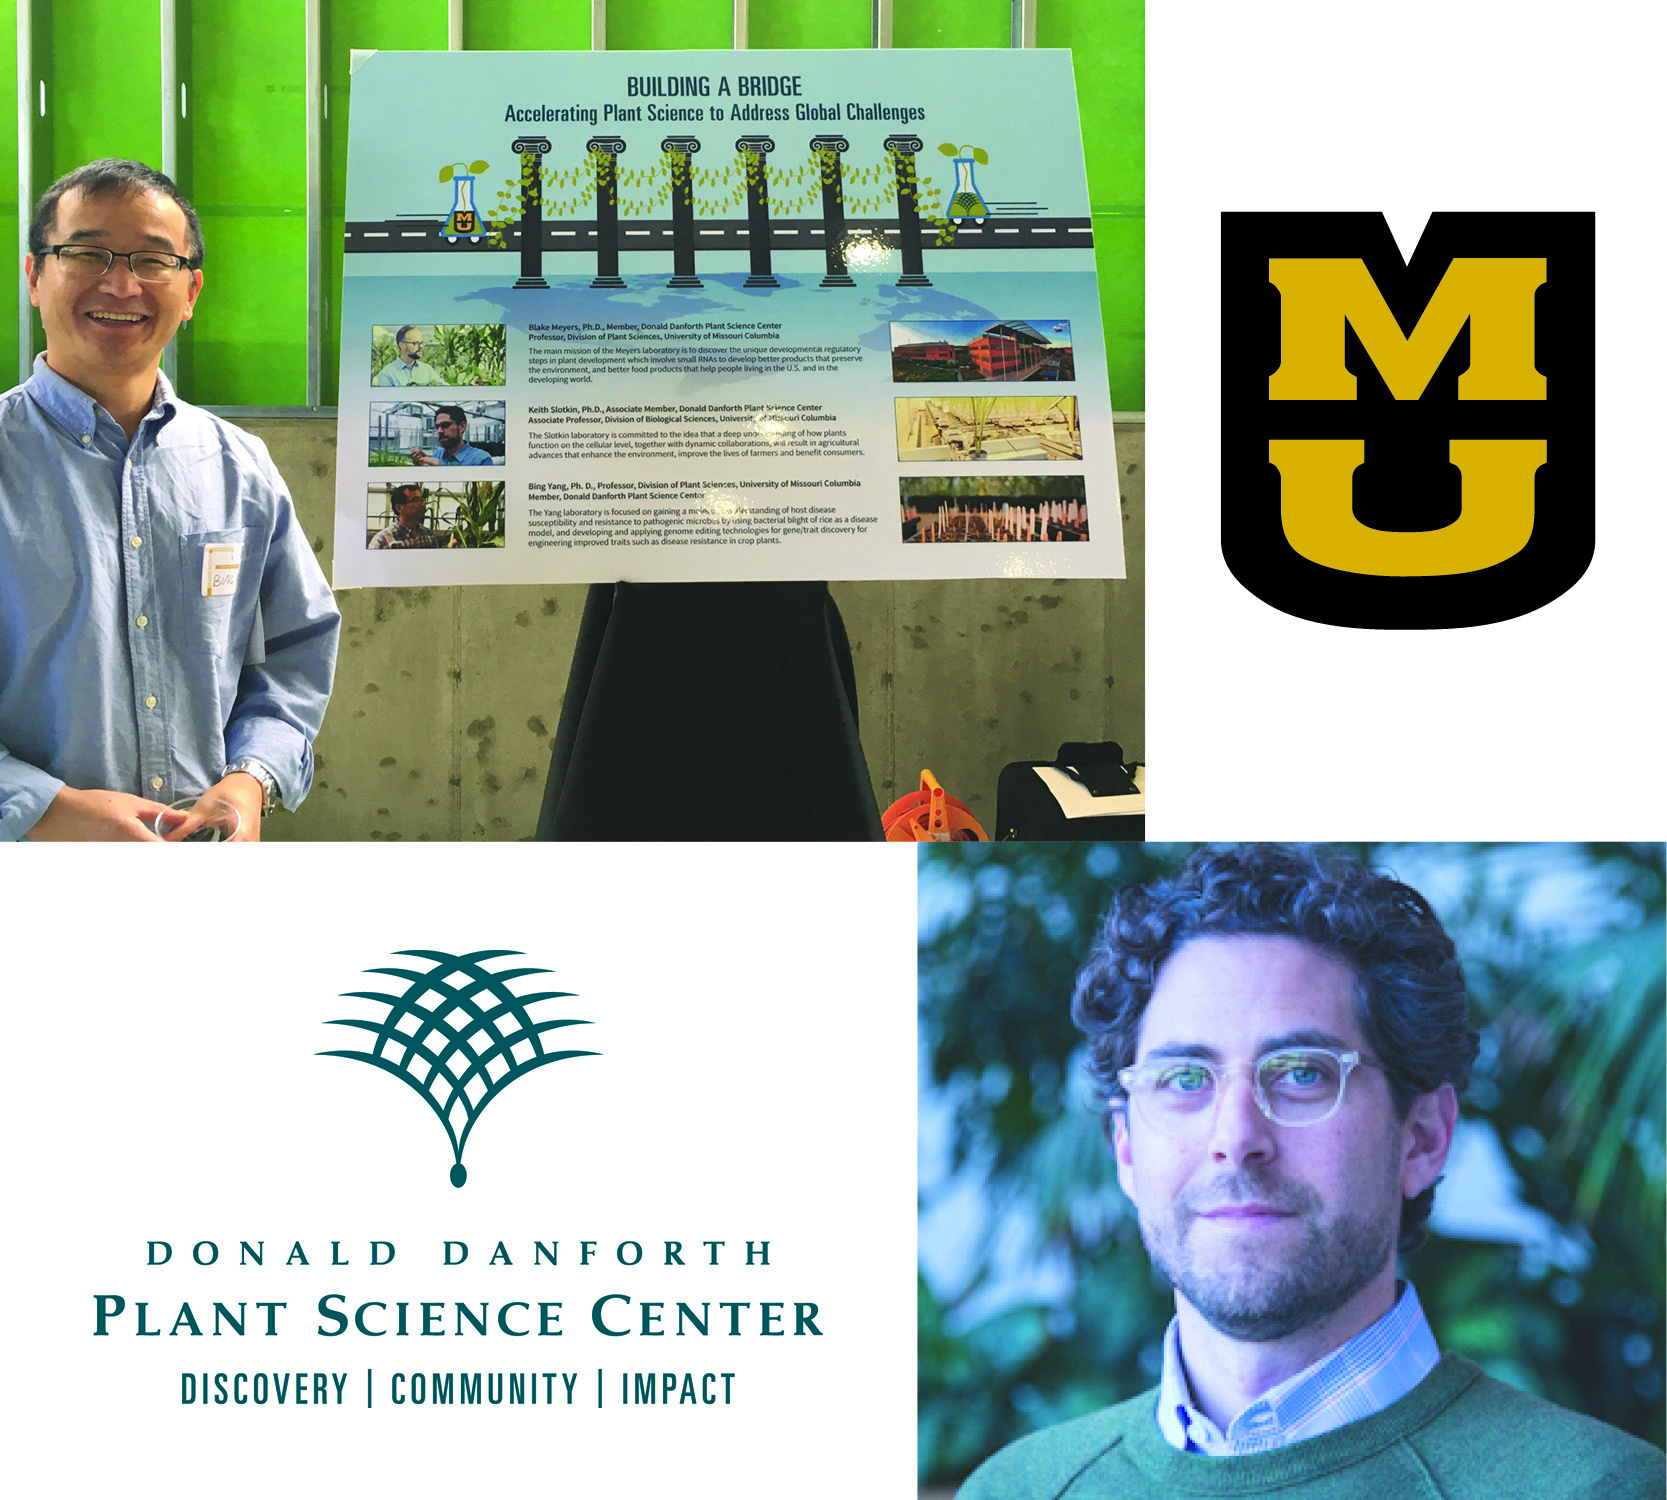 Two new faculty members joined the University of Missouri this fall as part of the initiative between MU and the Donald Danforth Plant Science Center (DDPSC) to elevate plant science in Missouri. <br><br><a href=https://ipg.missouri.edu/feature-stories/Universi_10012018.cfm>READ MORE>></a>